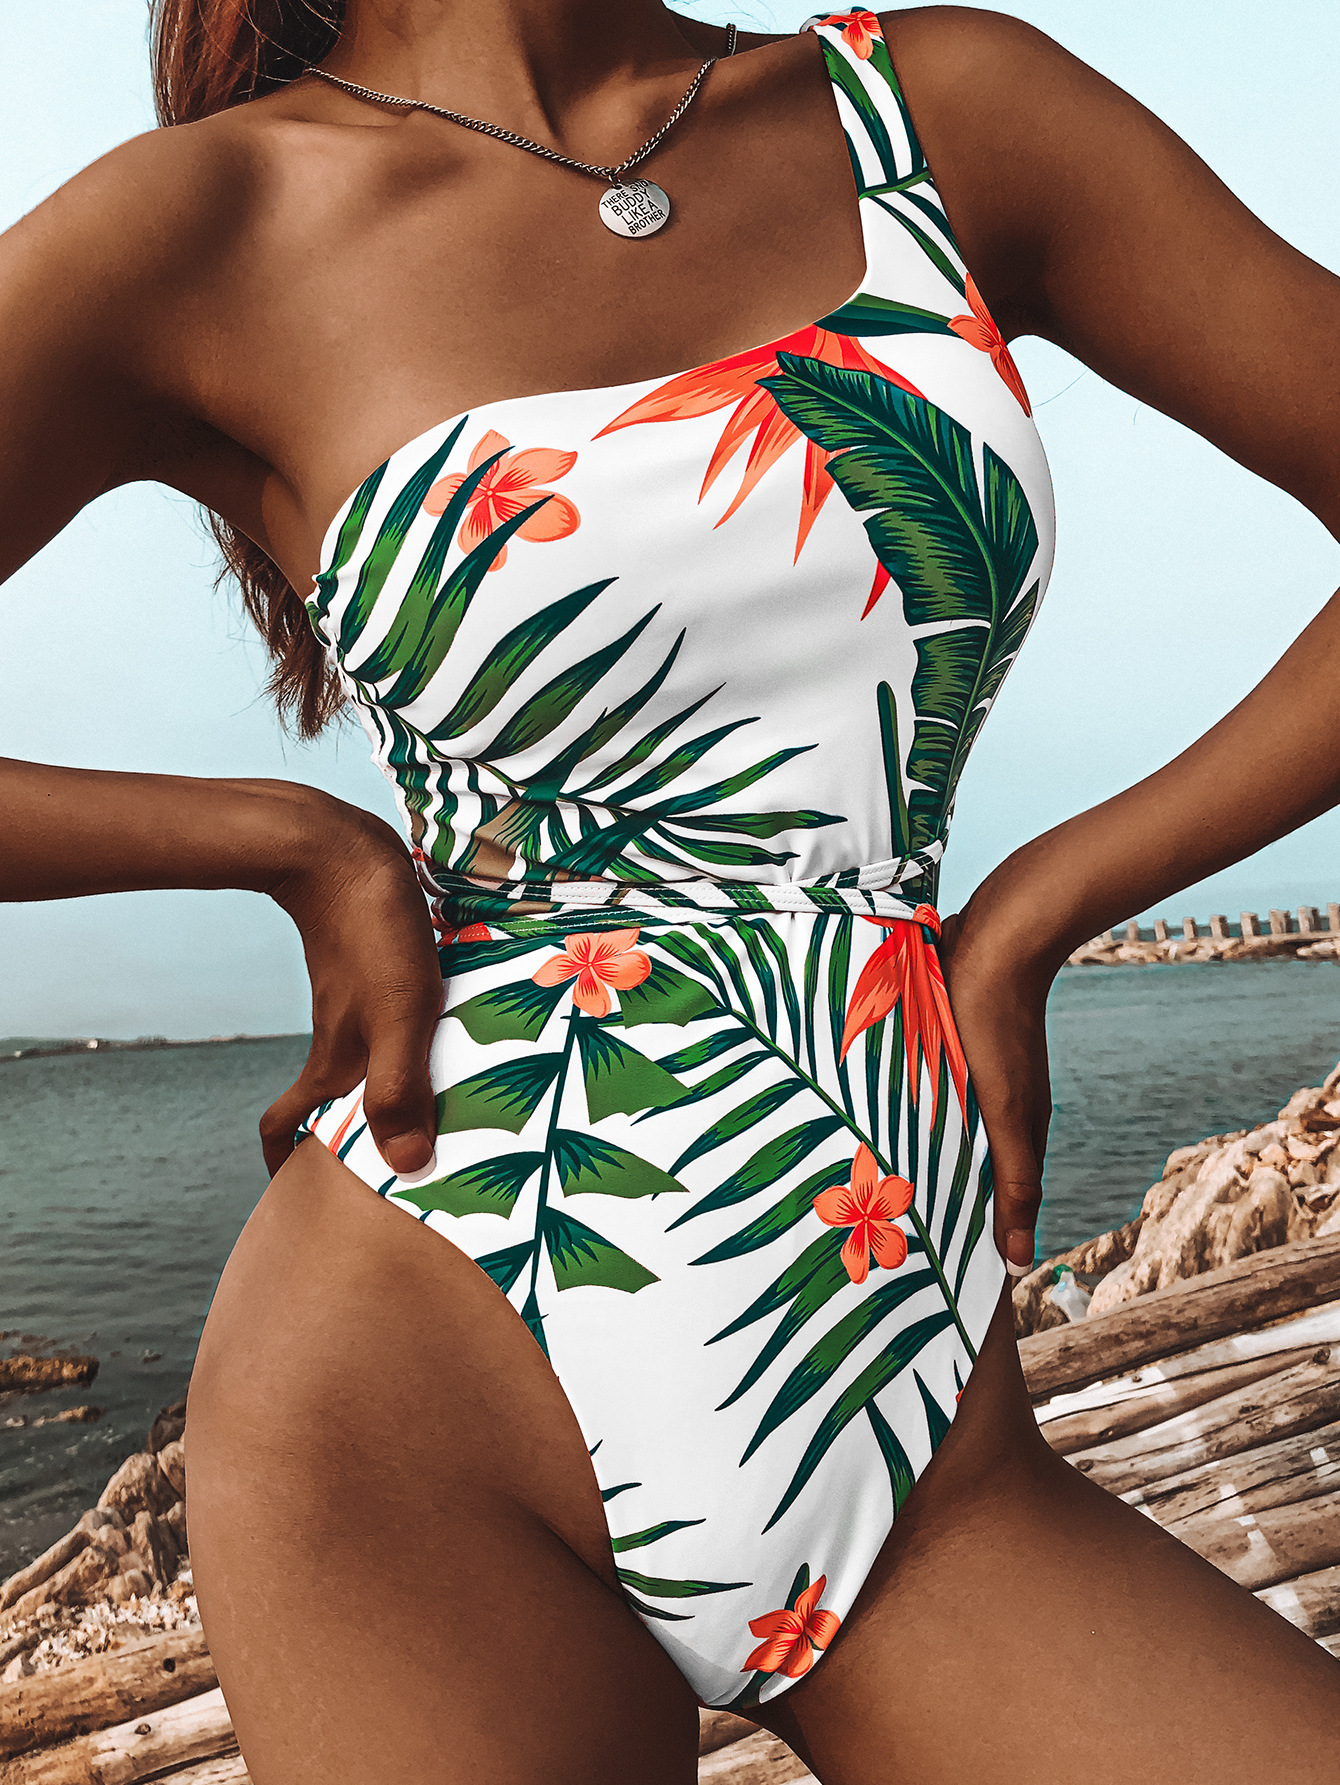 Clearance SaleOne-Piece Swimsuit Monokini Thong Push-Up High-Leg Summer Sexy Solid Cut Women AGOUTI